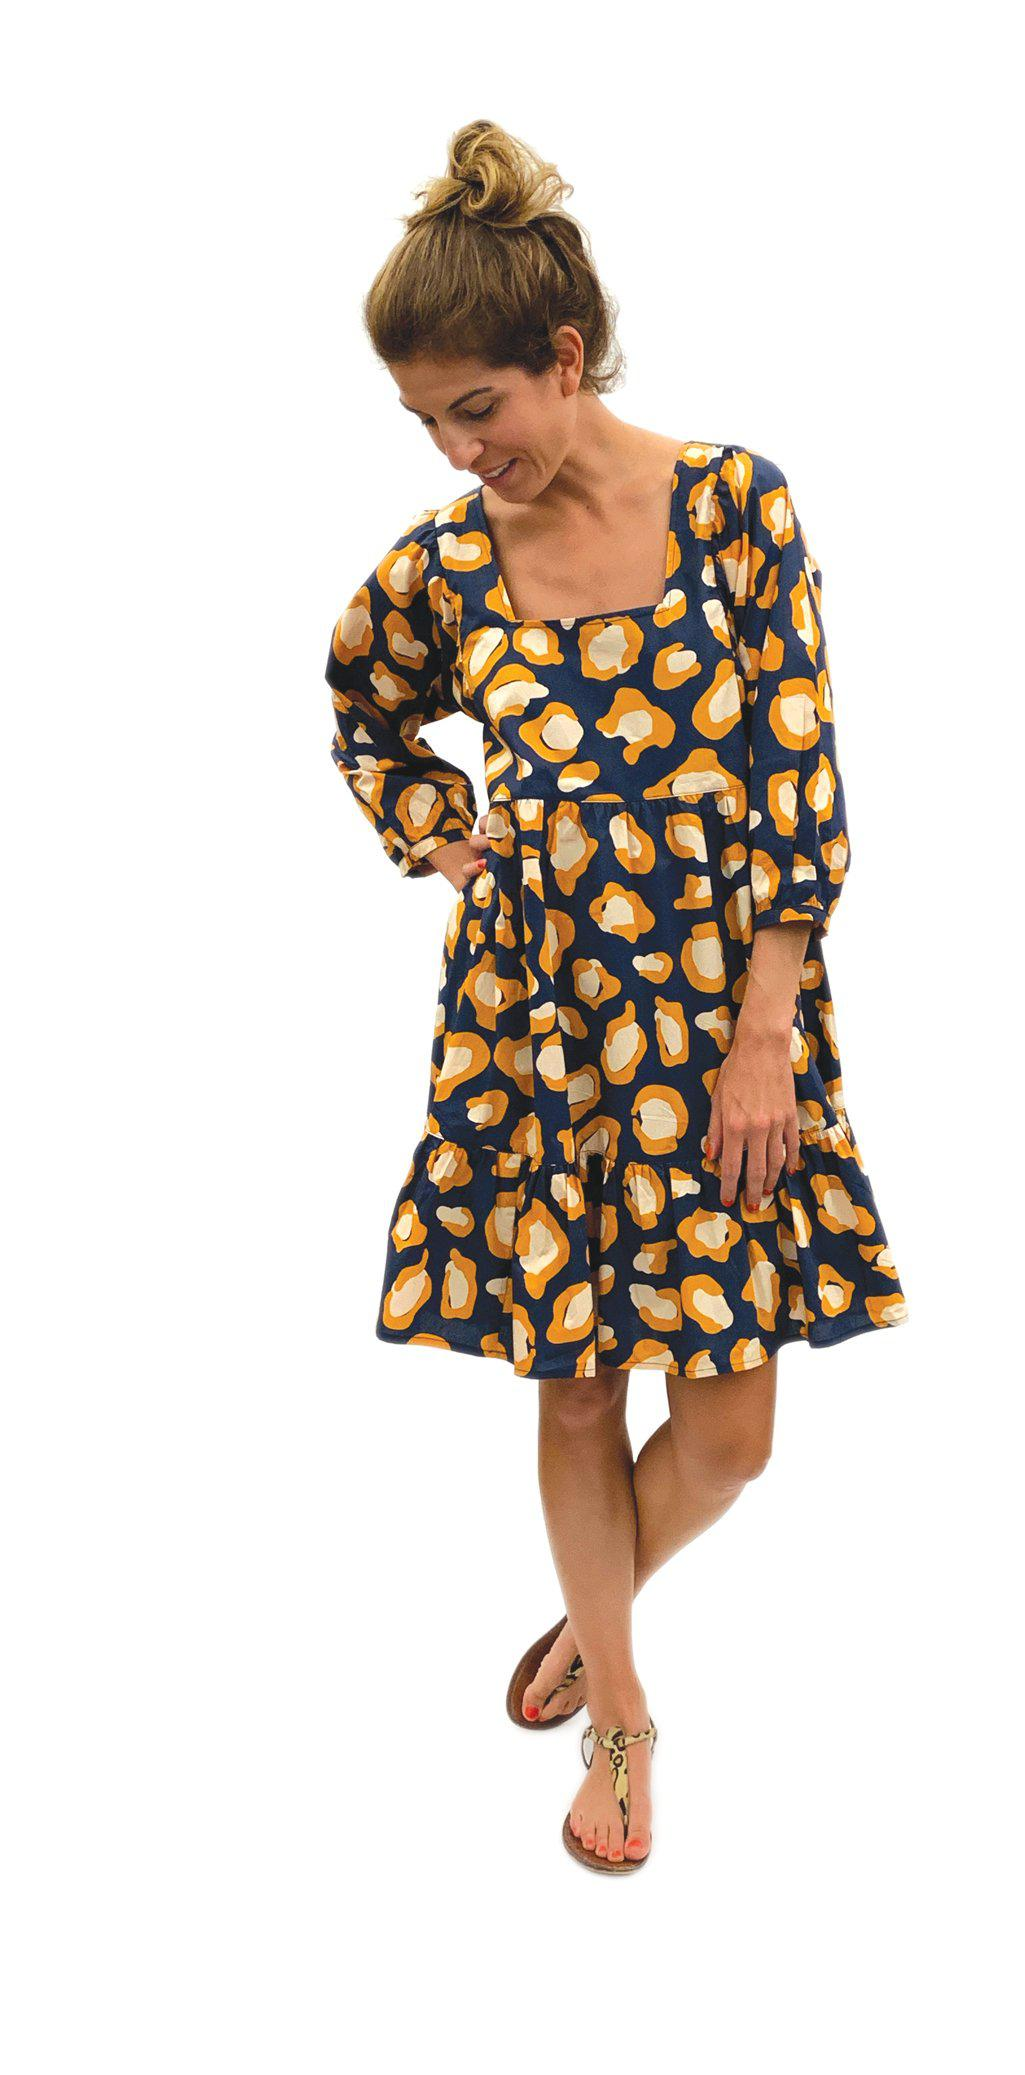 Pink Chicken Leena Dress xs 19ffpcw209d - dress blues oversized leopard